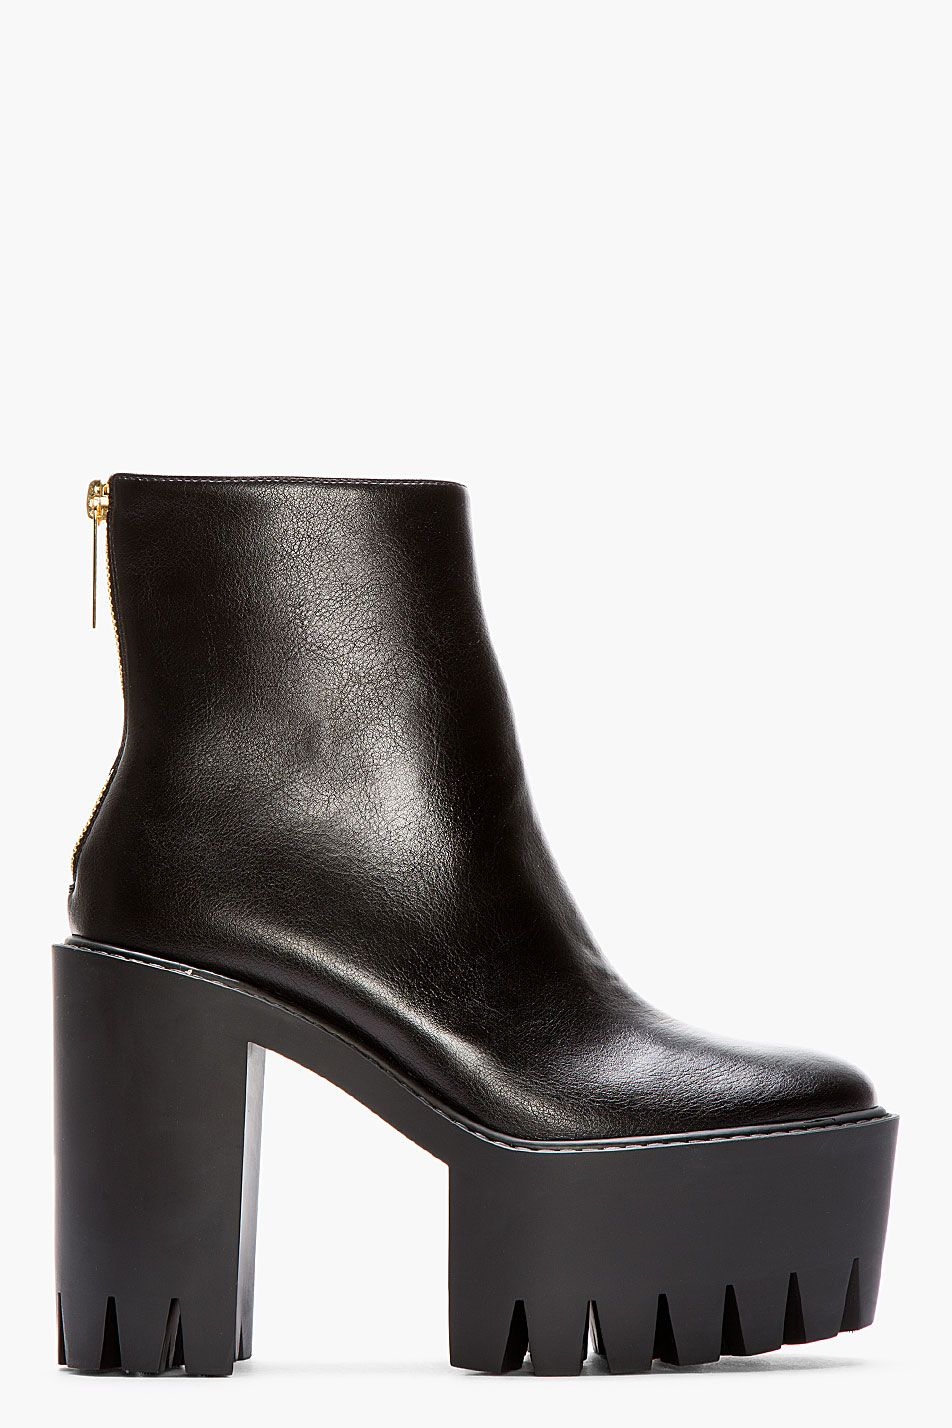 Stella McCartney Studded Round-Toe Ankle Boots